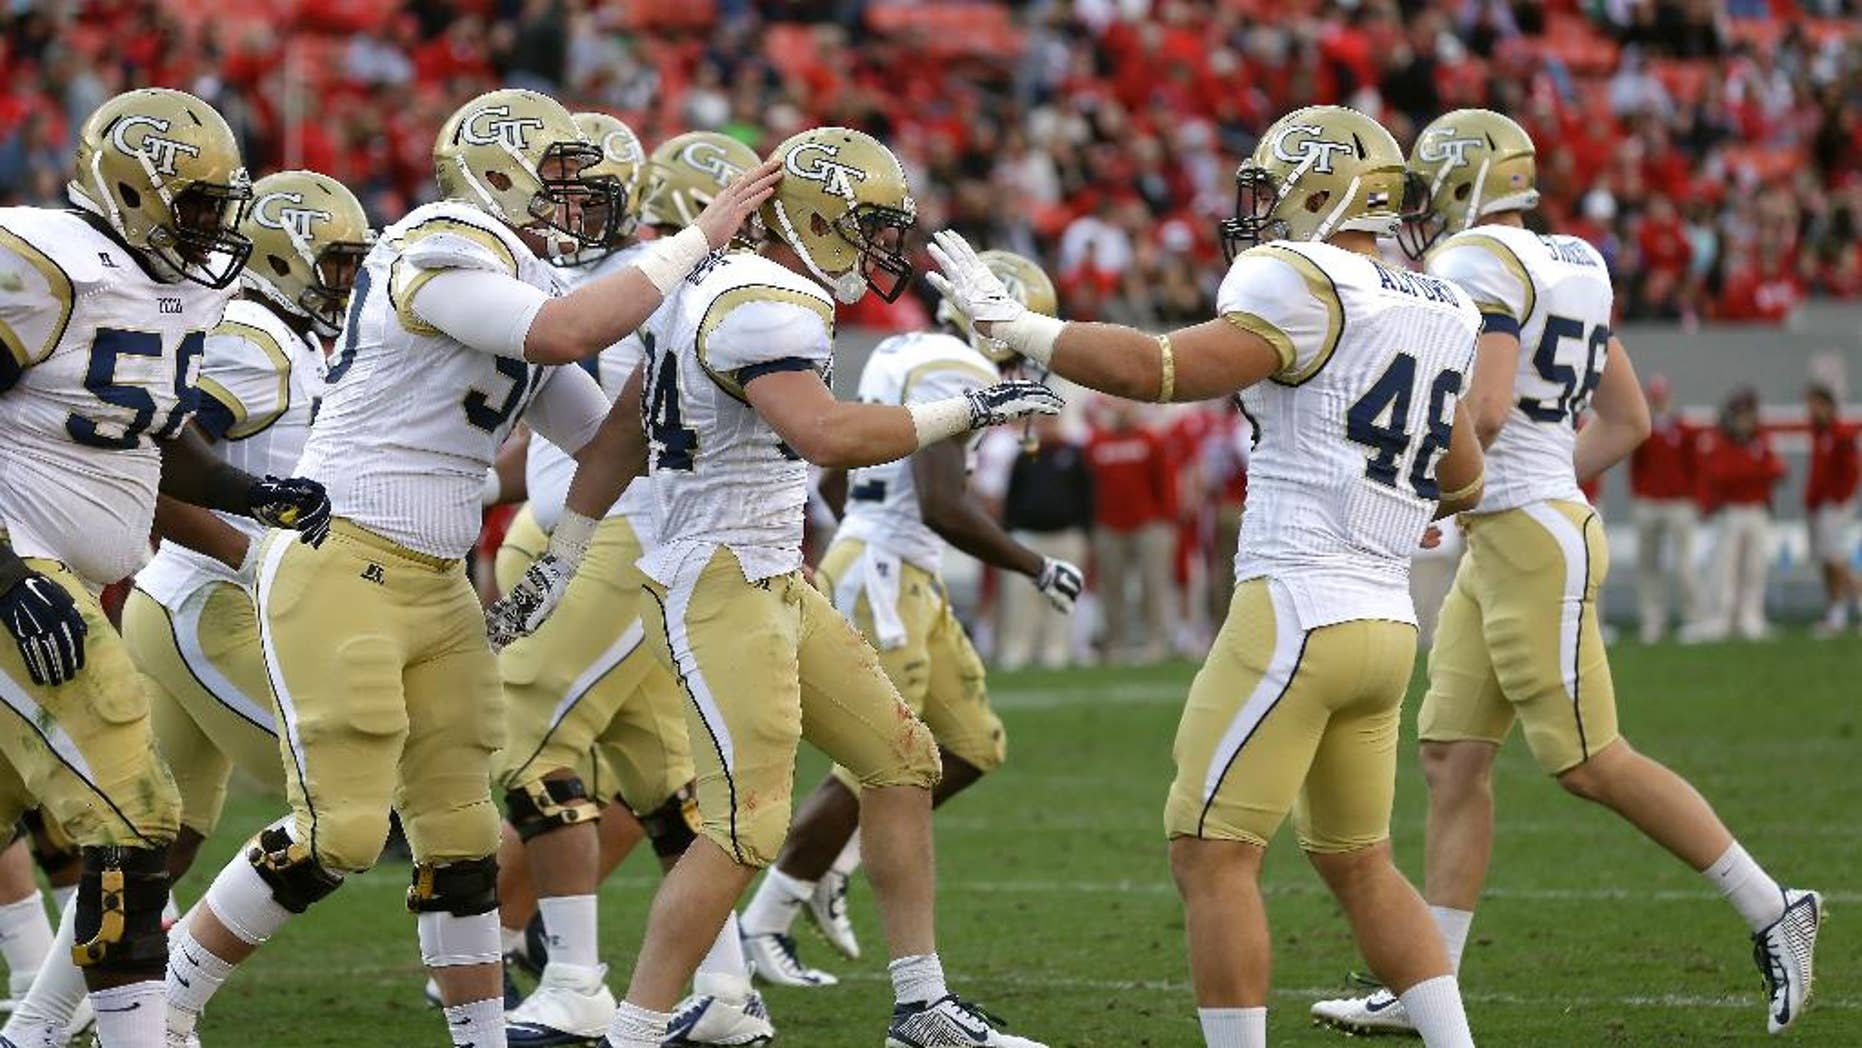 Georgia Tech's Matt Connors, center, is congratulated by teammates following Connors' touchdown against North Carolina State during the second half of an NCAA college football game in Raleigh, N.C., Saturday, Nov. 8, 2014. Georgia Tech won 56-23. (AP Photo/Gerry Broome)